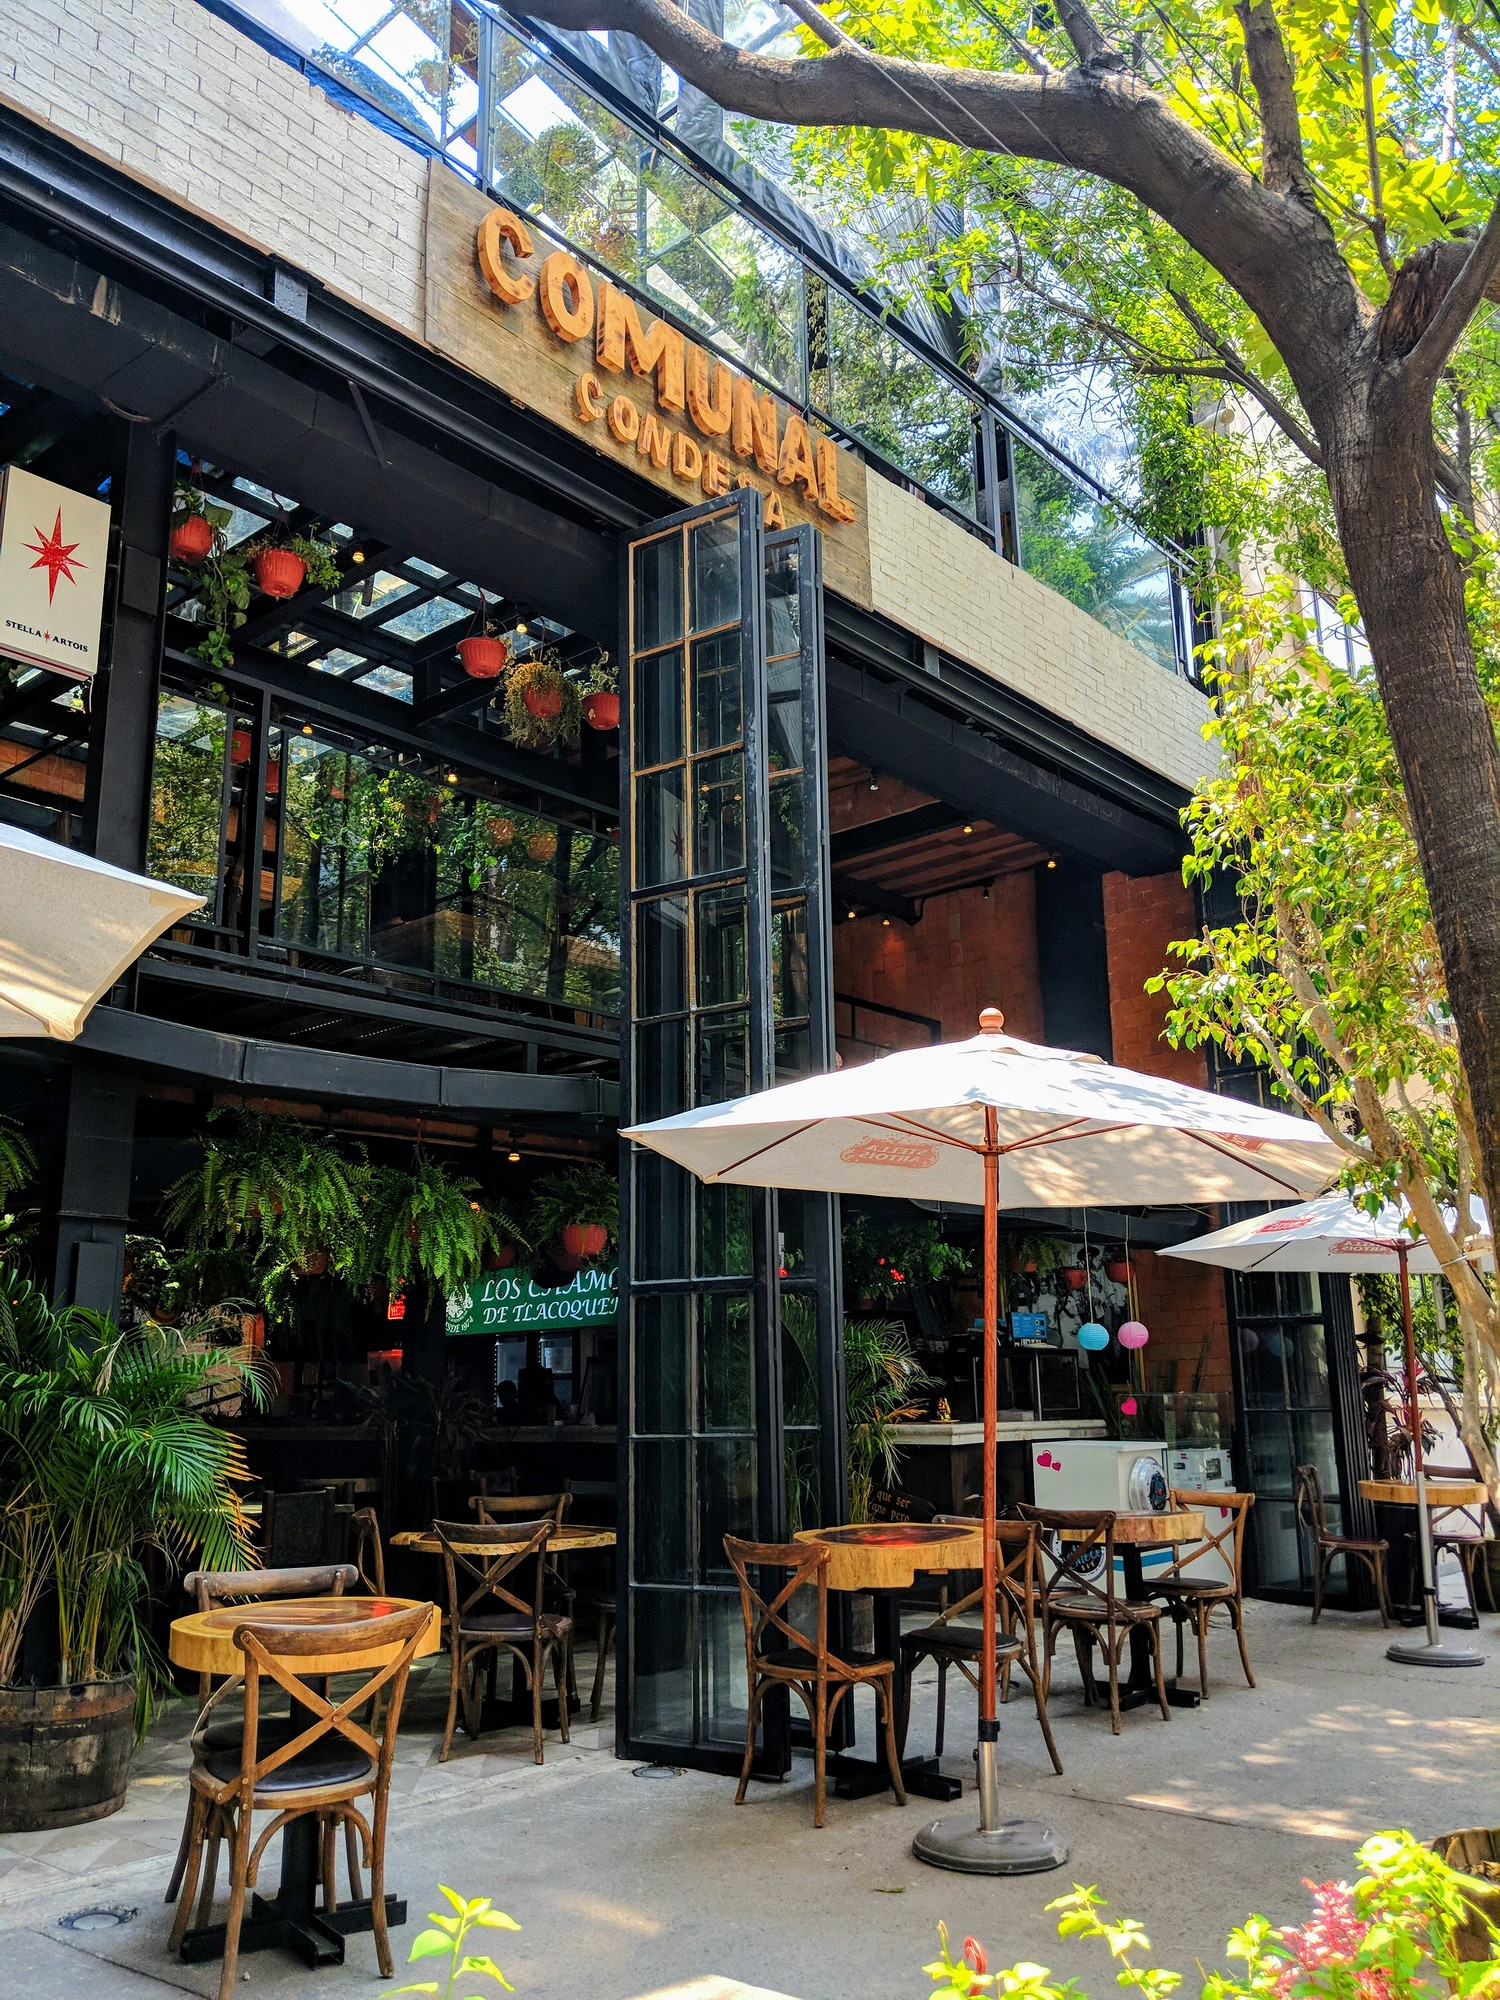 Where to find the best restaurants in La Condesa Mexico, Comunal Condesa is kid friendly with a kids play area.